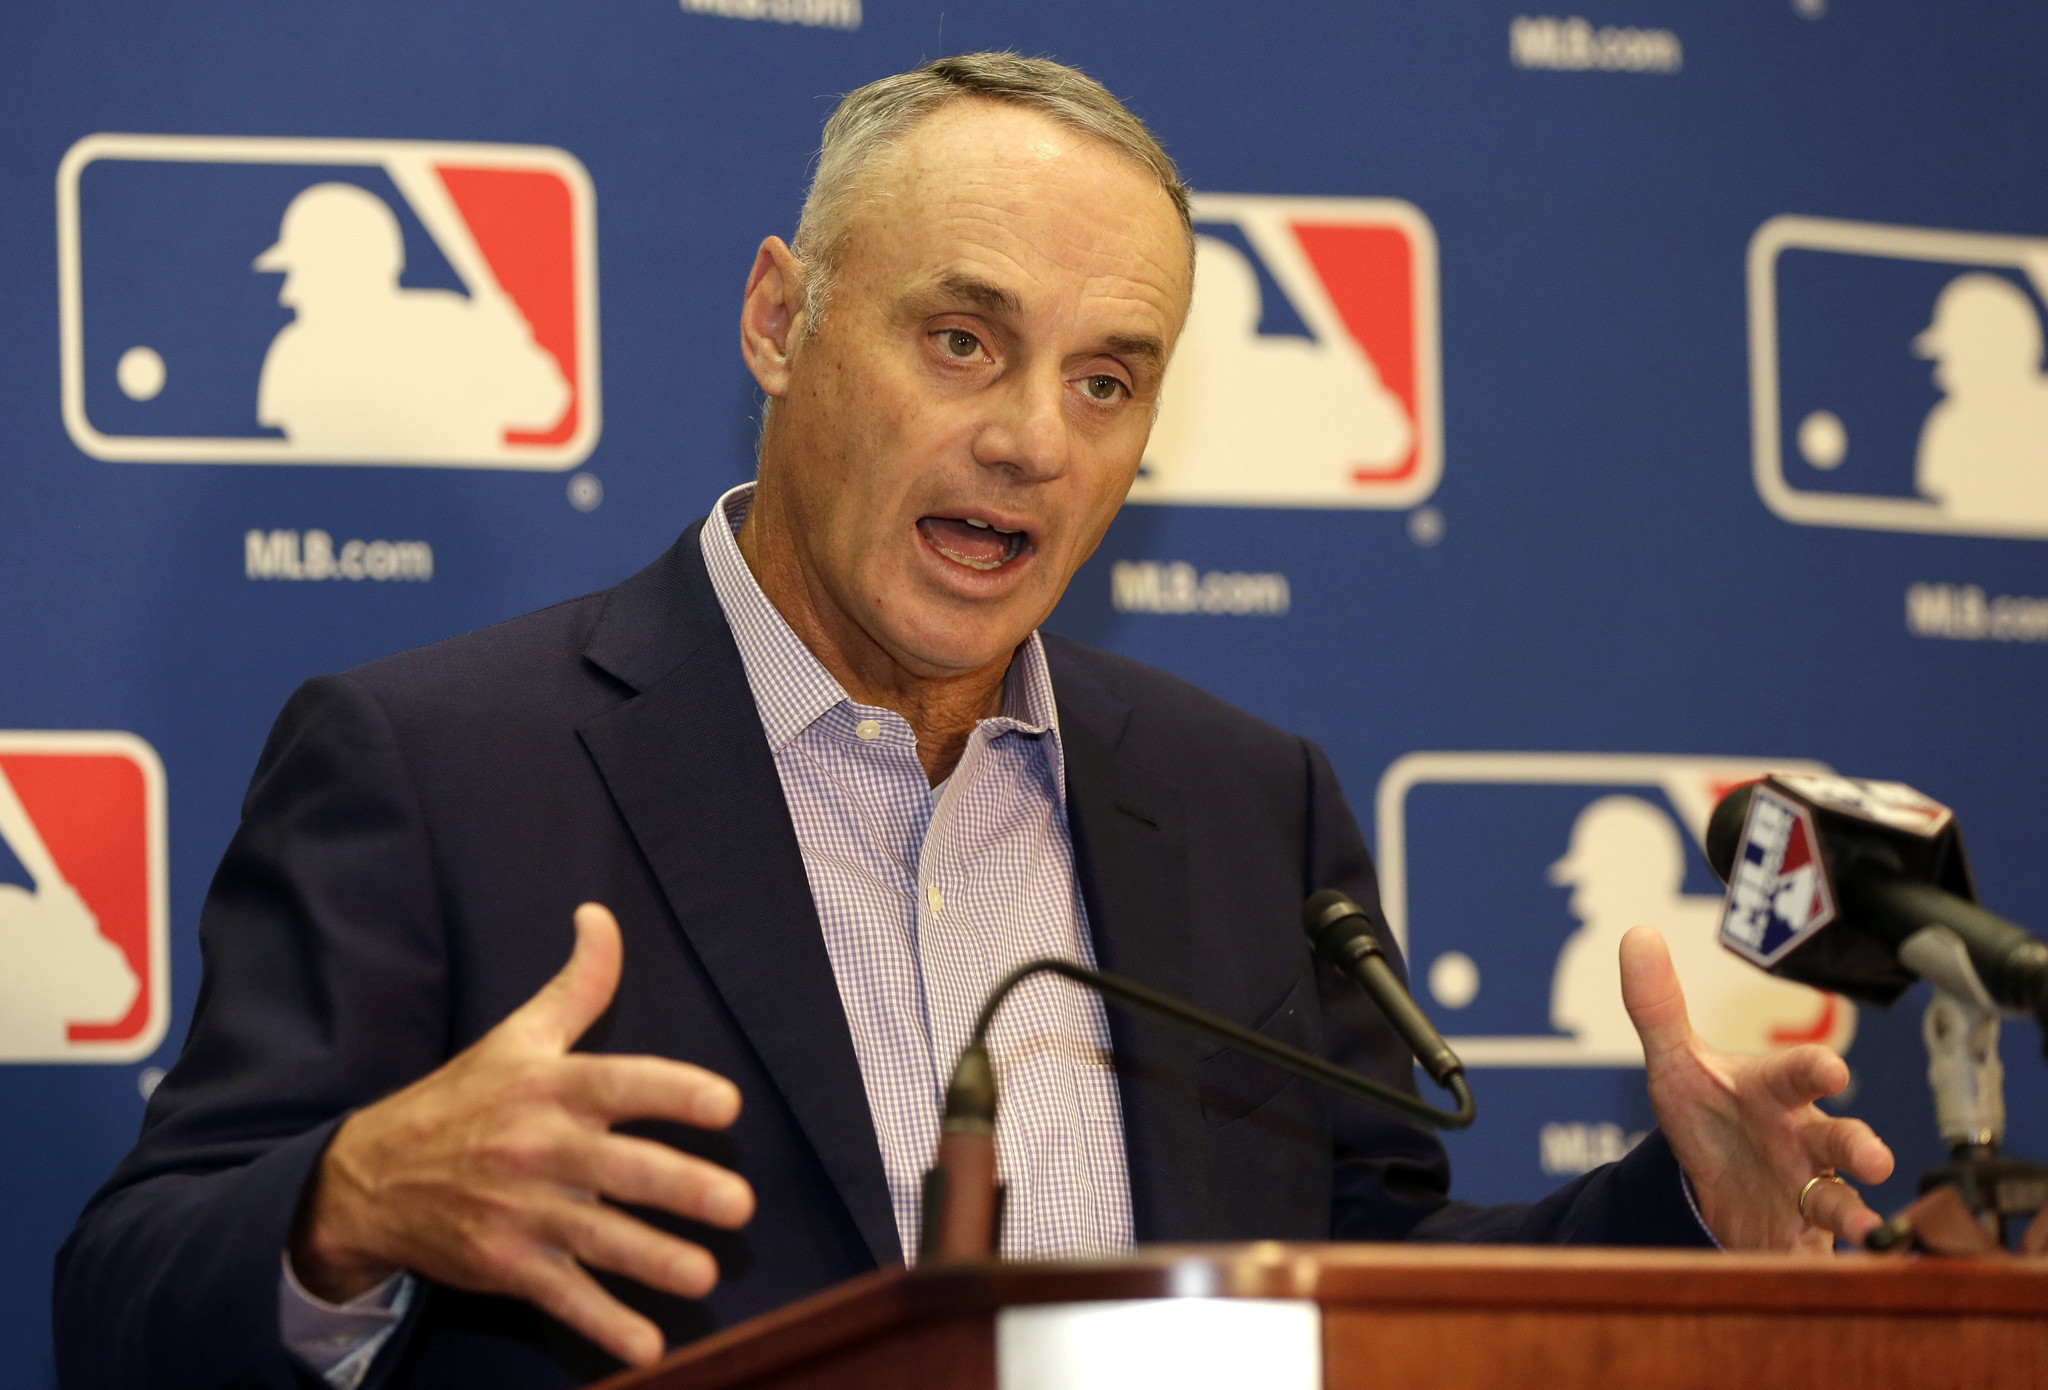 Sd-sp-mlb-rule-changes-manfred-20170221